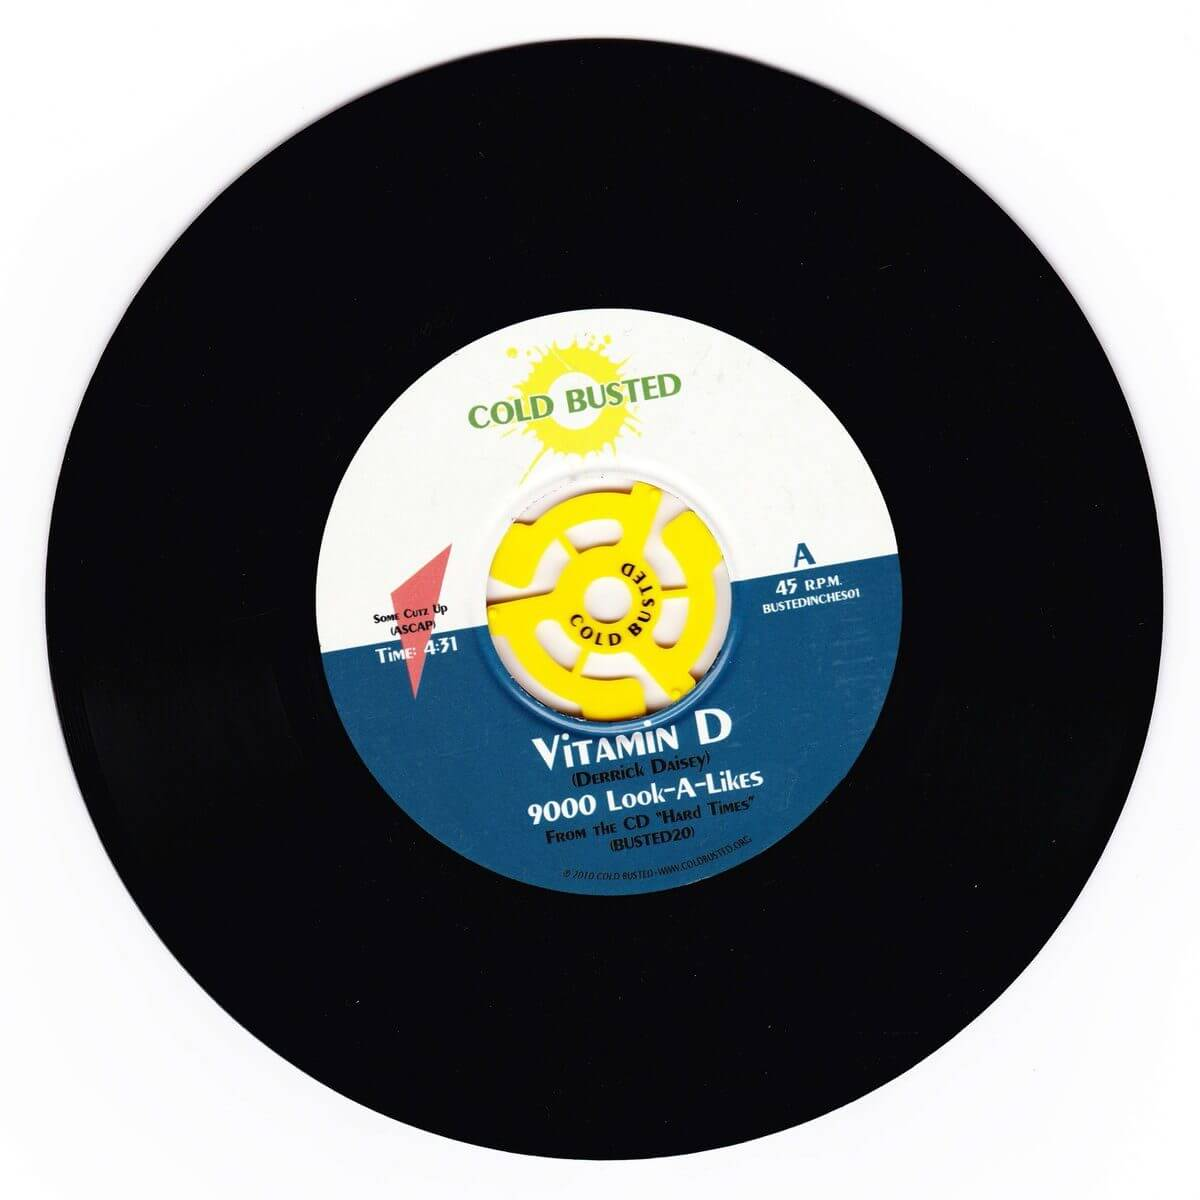 "Vitamin D - 9000 Look-A-Likes - Limited Edition 7"" Vinyl Cold Busted"